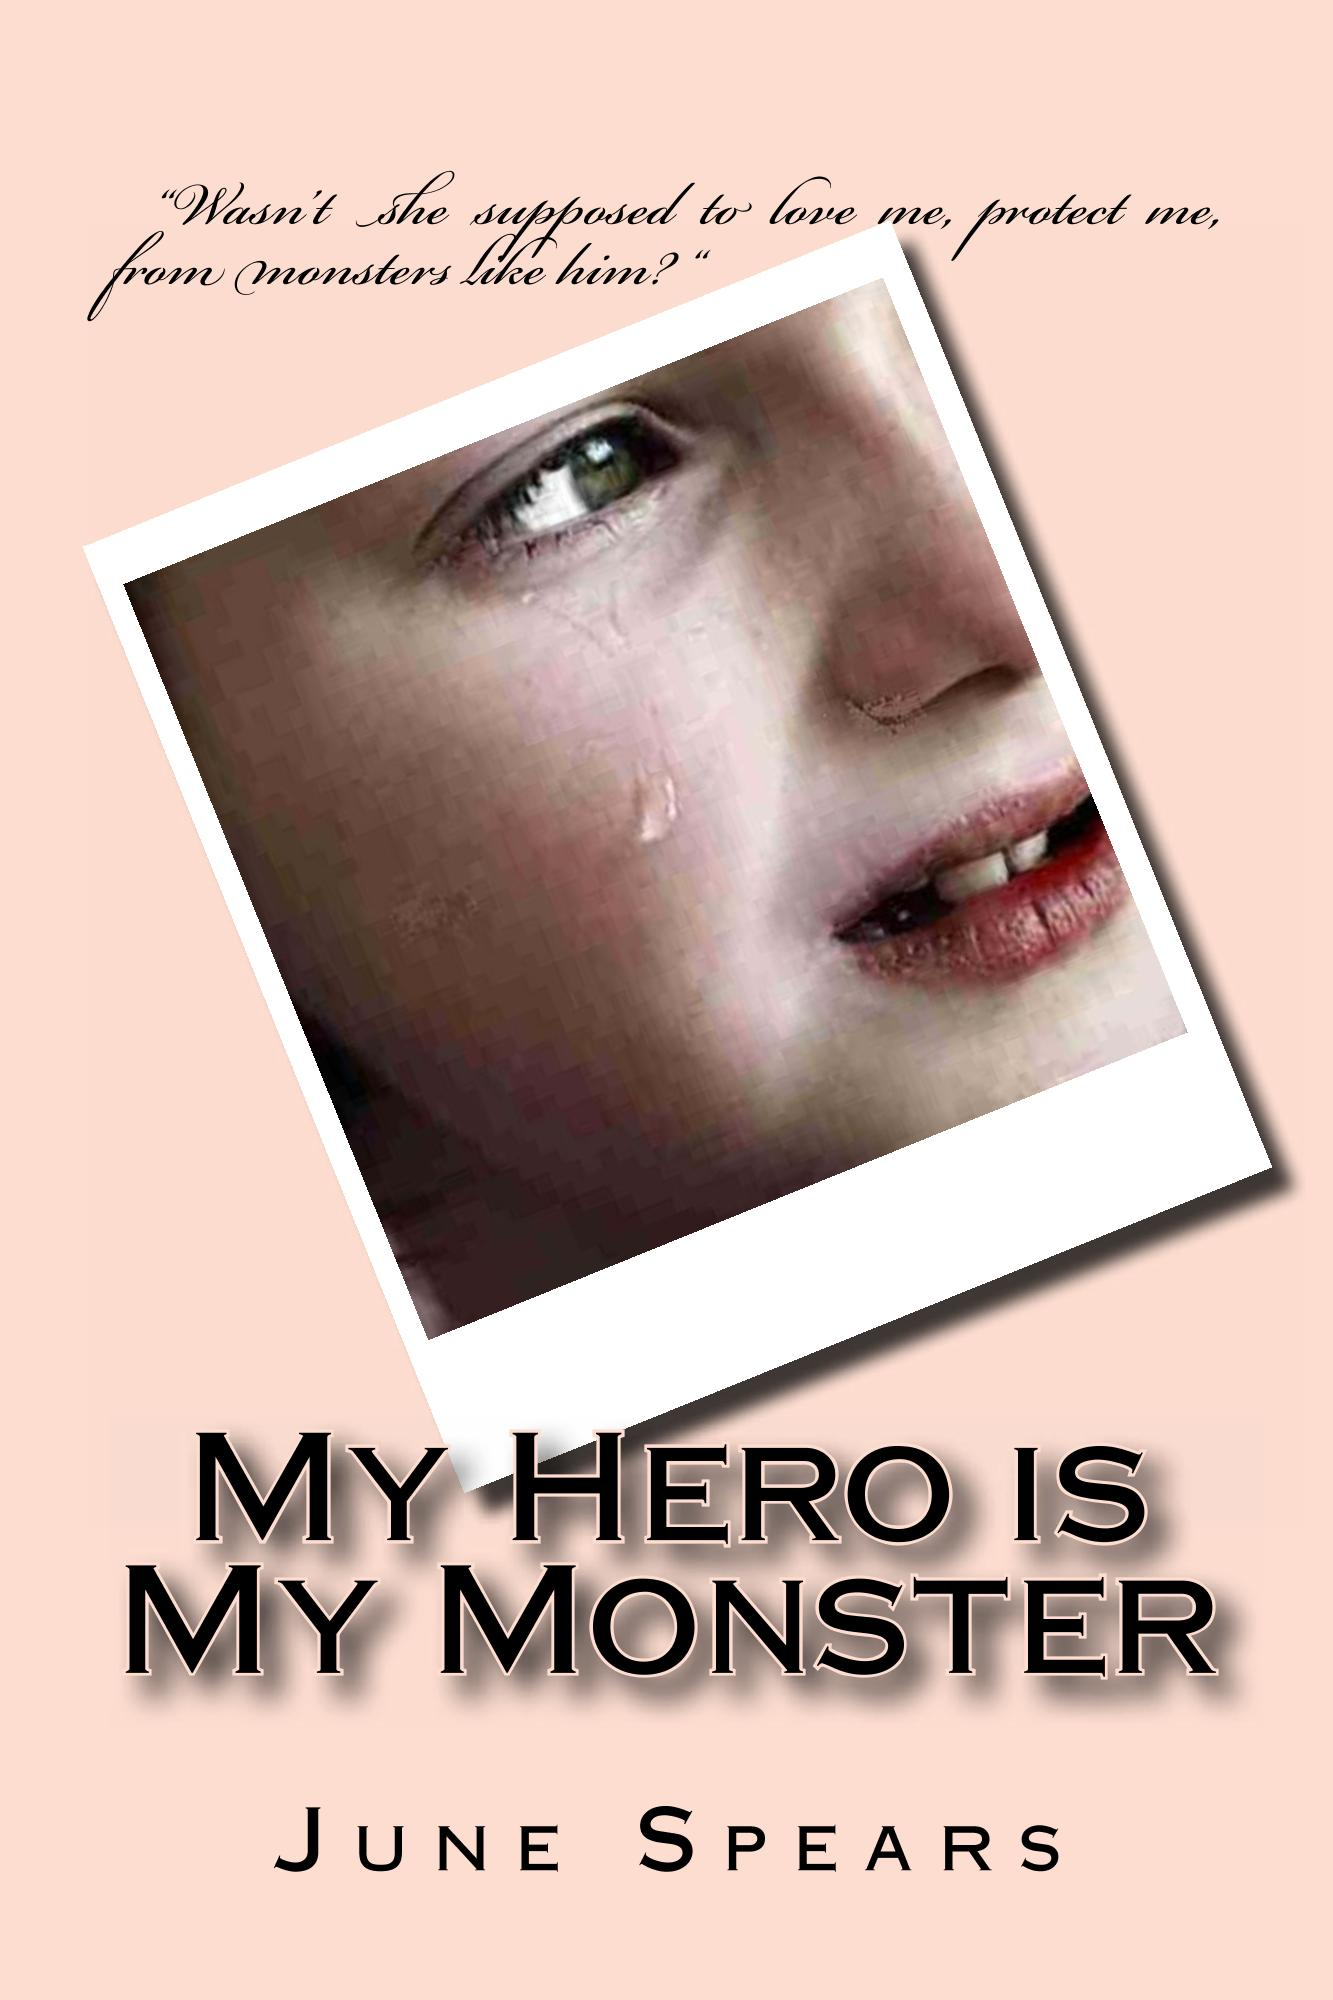 my_hero_is_my_monste_cover_for_kindle-c9ce112e10349056a99d39377f6cfe2227d70812